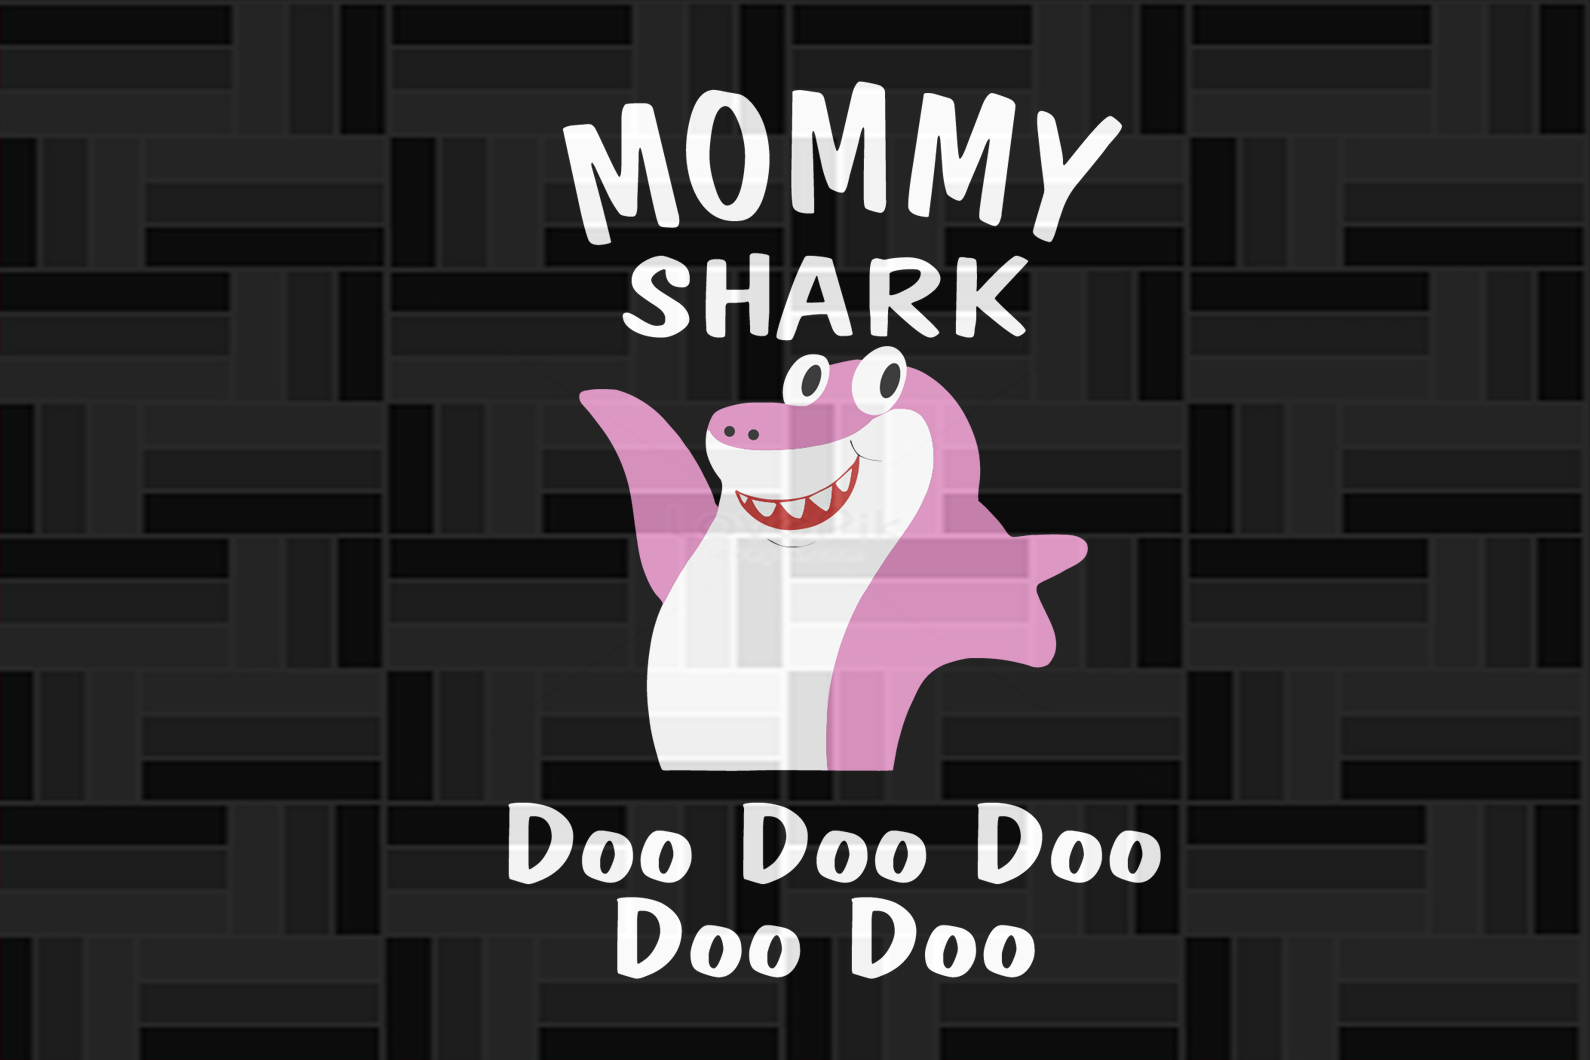 Mommy shark doo doo, mommy svg, mommy shirt, mommy gift, family svg , family shirt,family gift,trending svg, Files For Silhouette, Files For Cricut, SVG, DXF, EPS, PNG, Instant Download